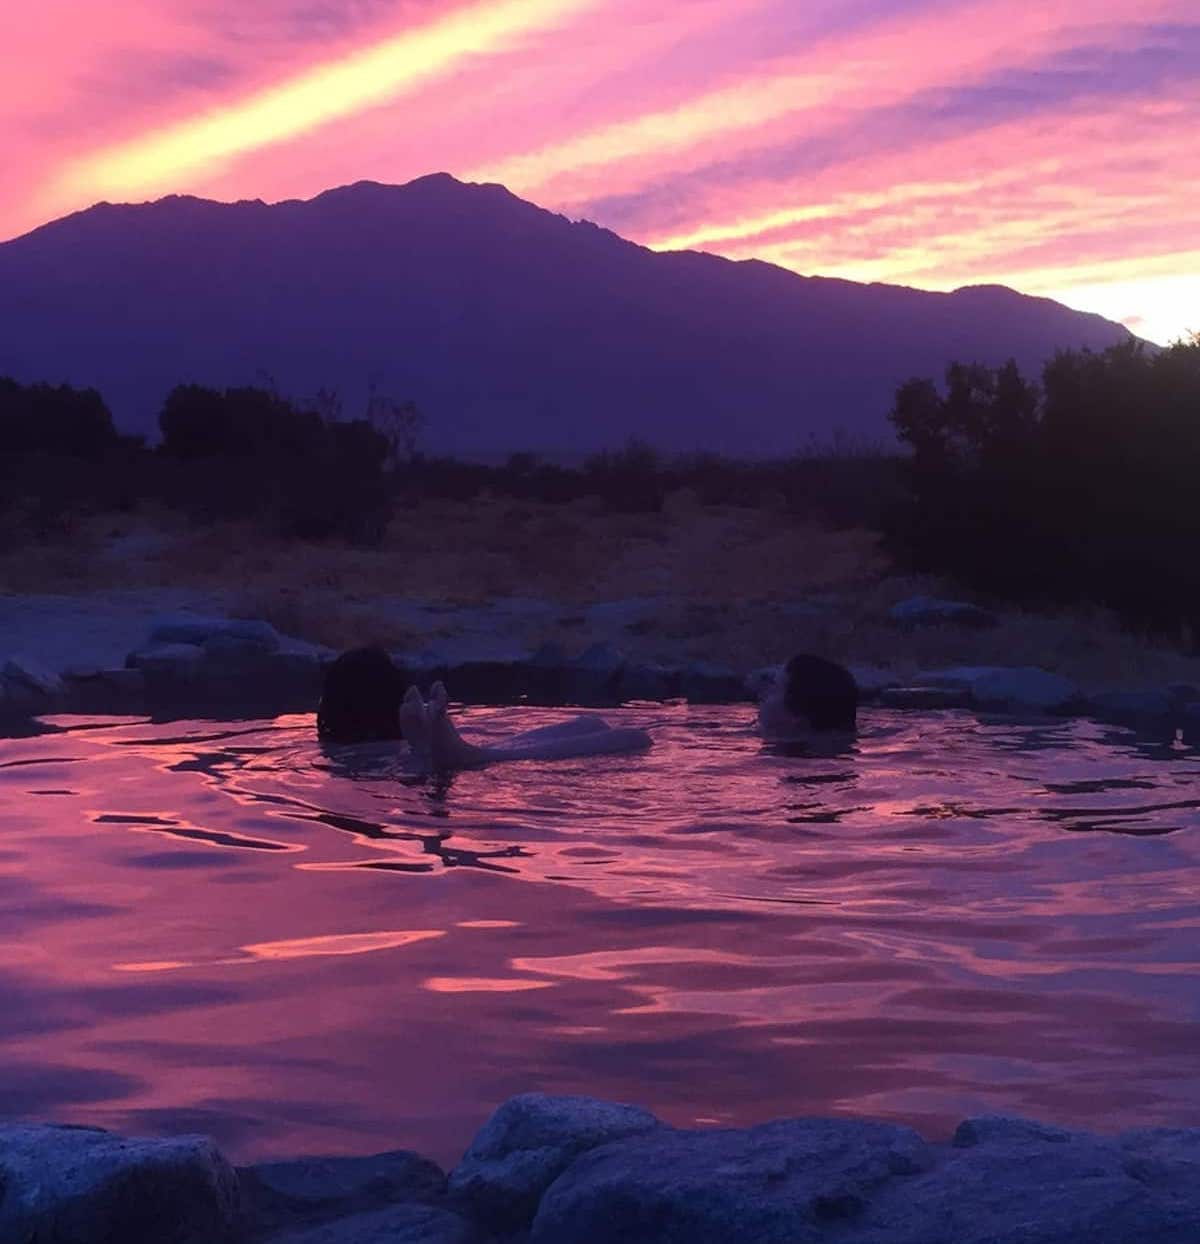 Hot Springs Sunset - Airbnb Palm Springs Experiences